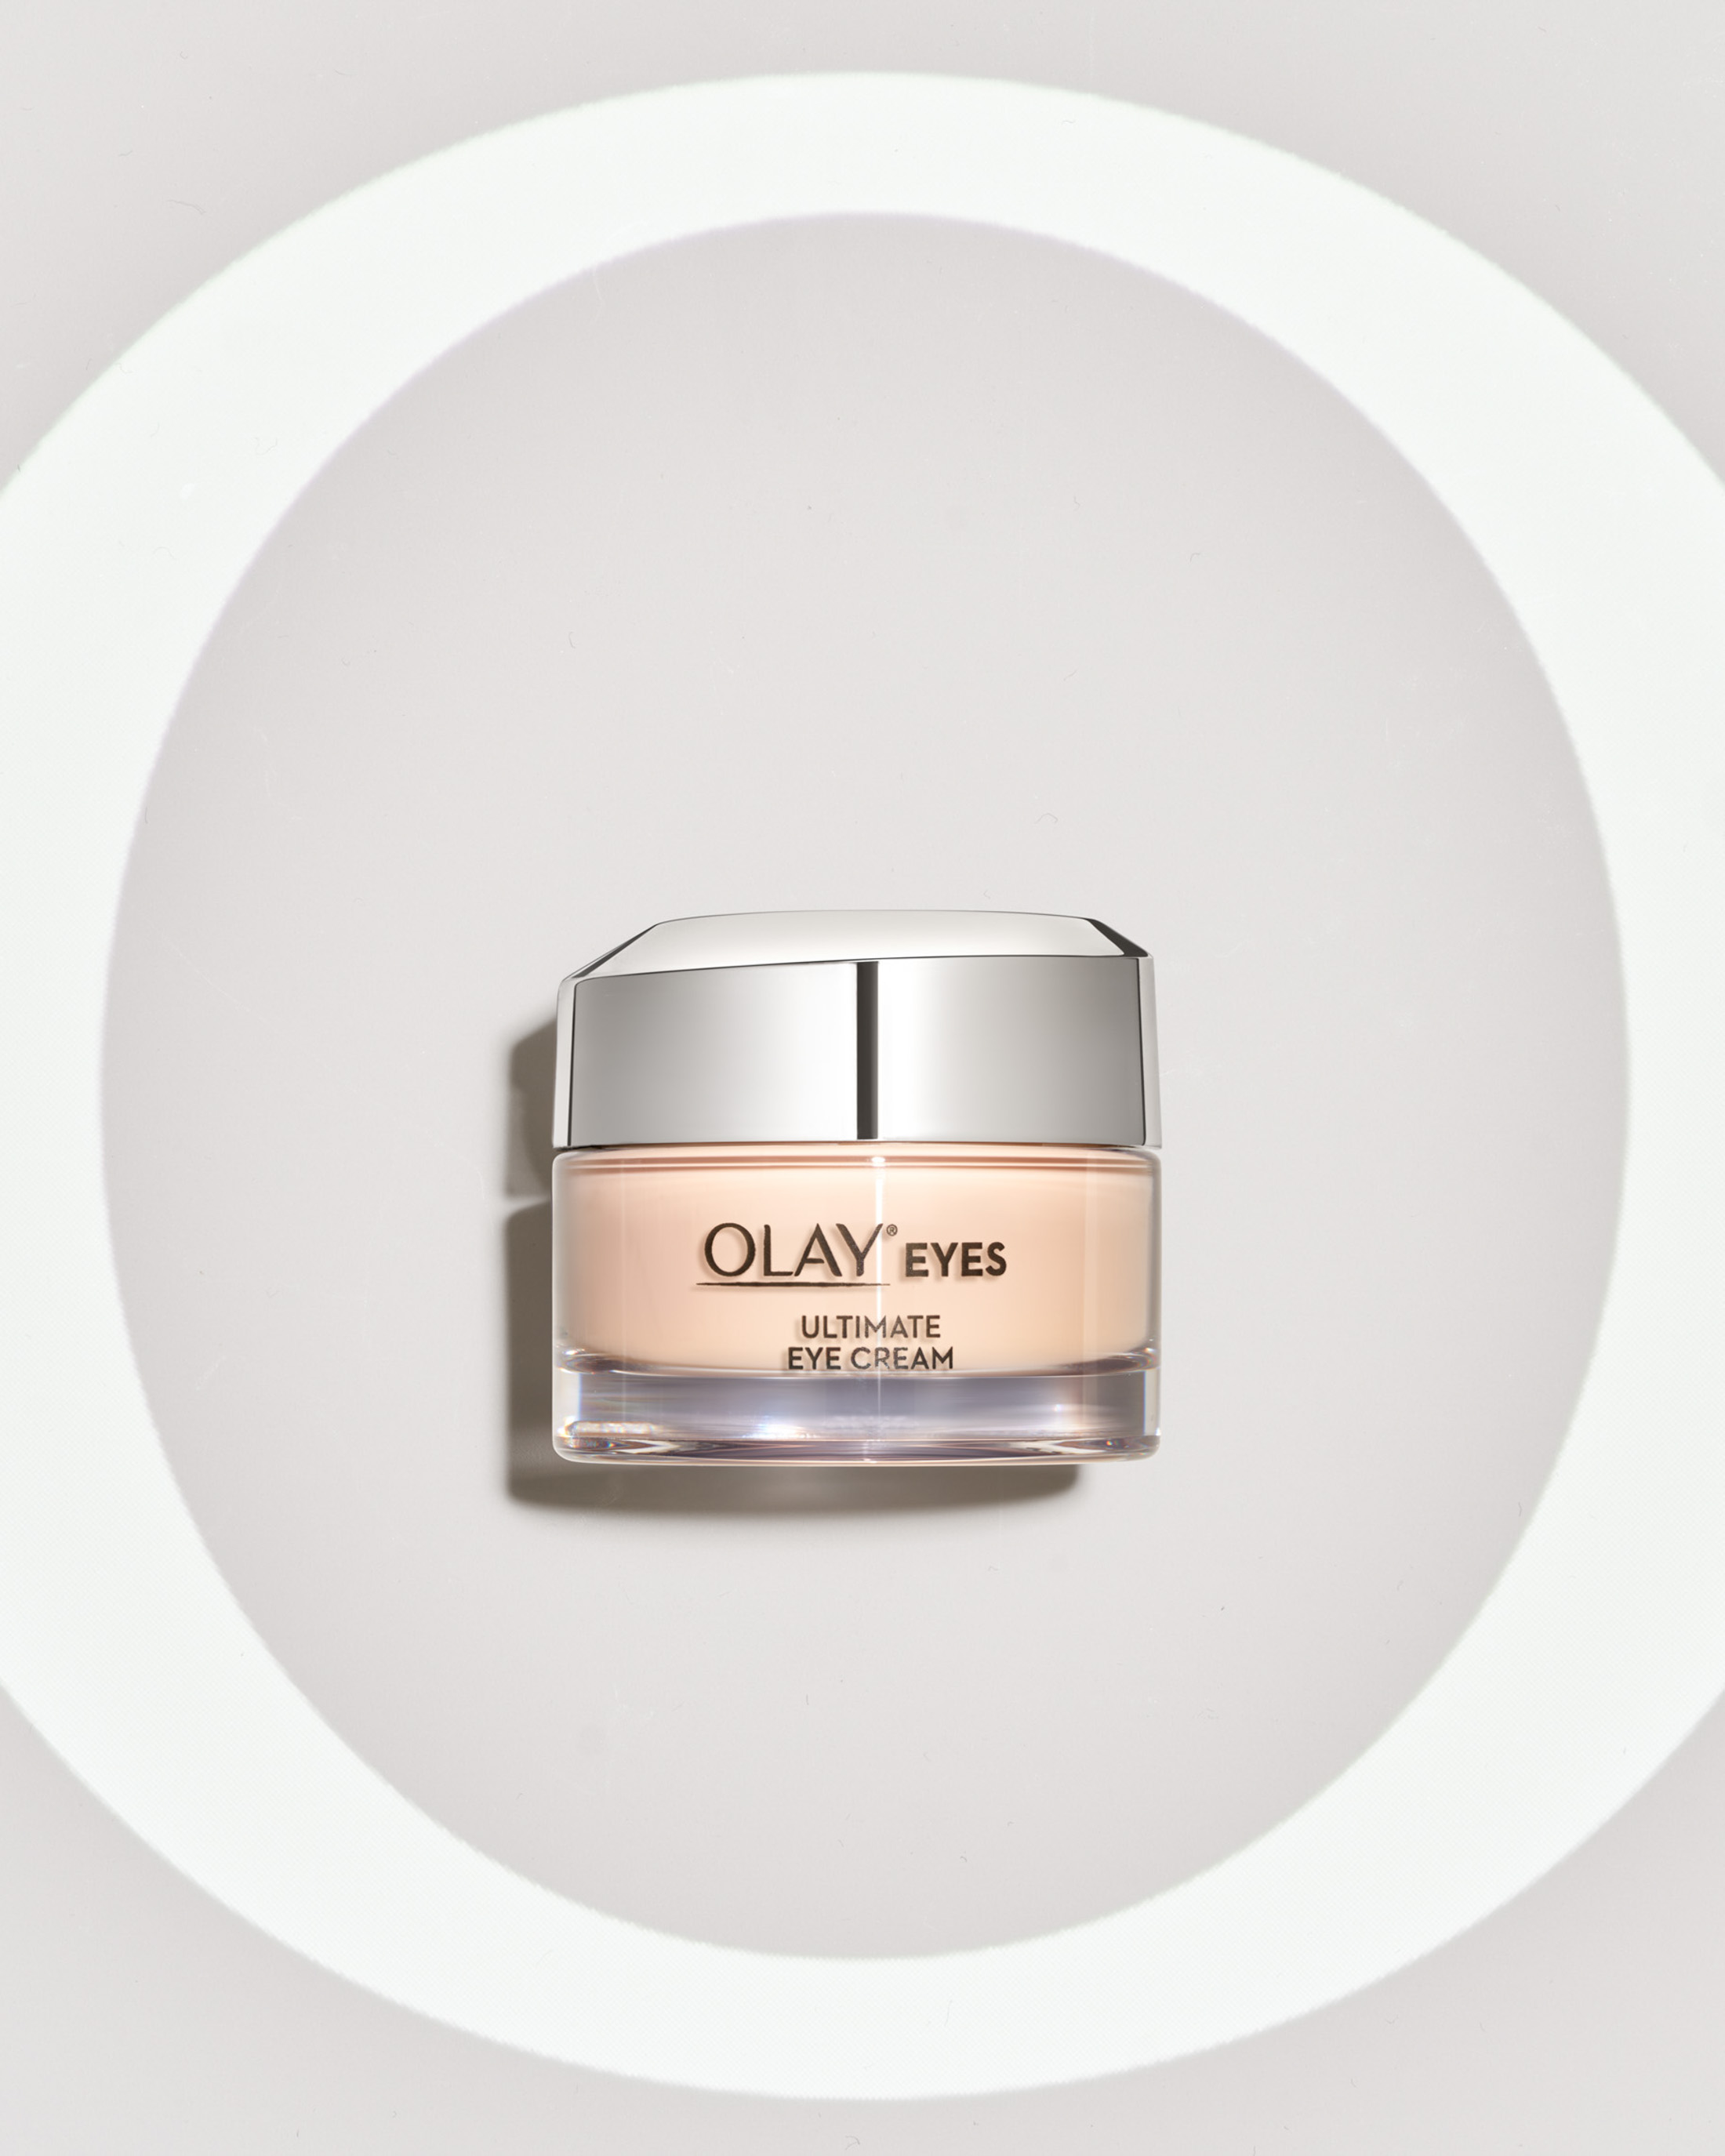 STAN Olay Ultimate Eye Cream Product Still Life